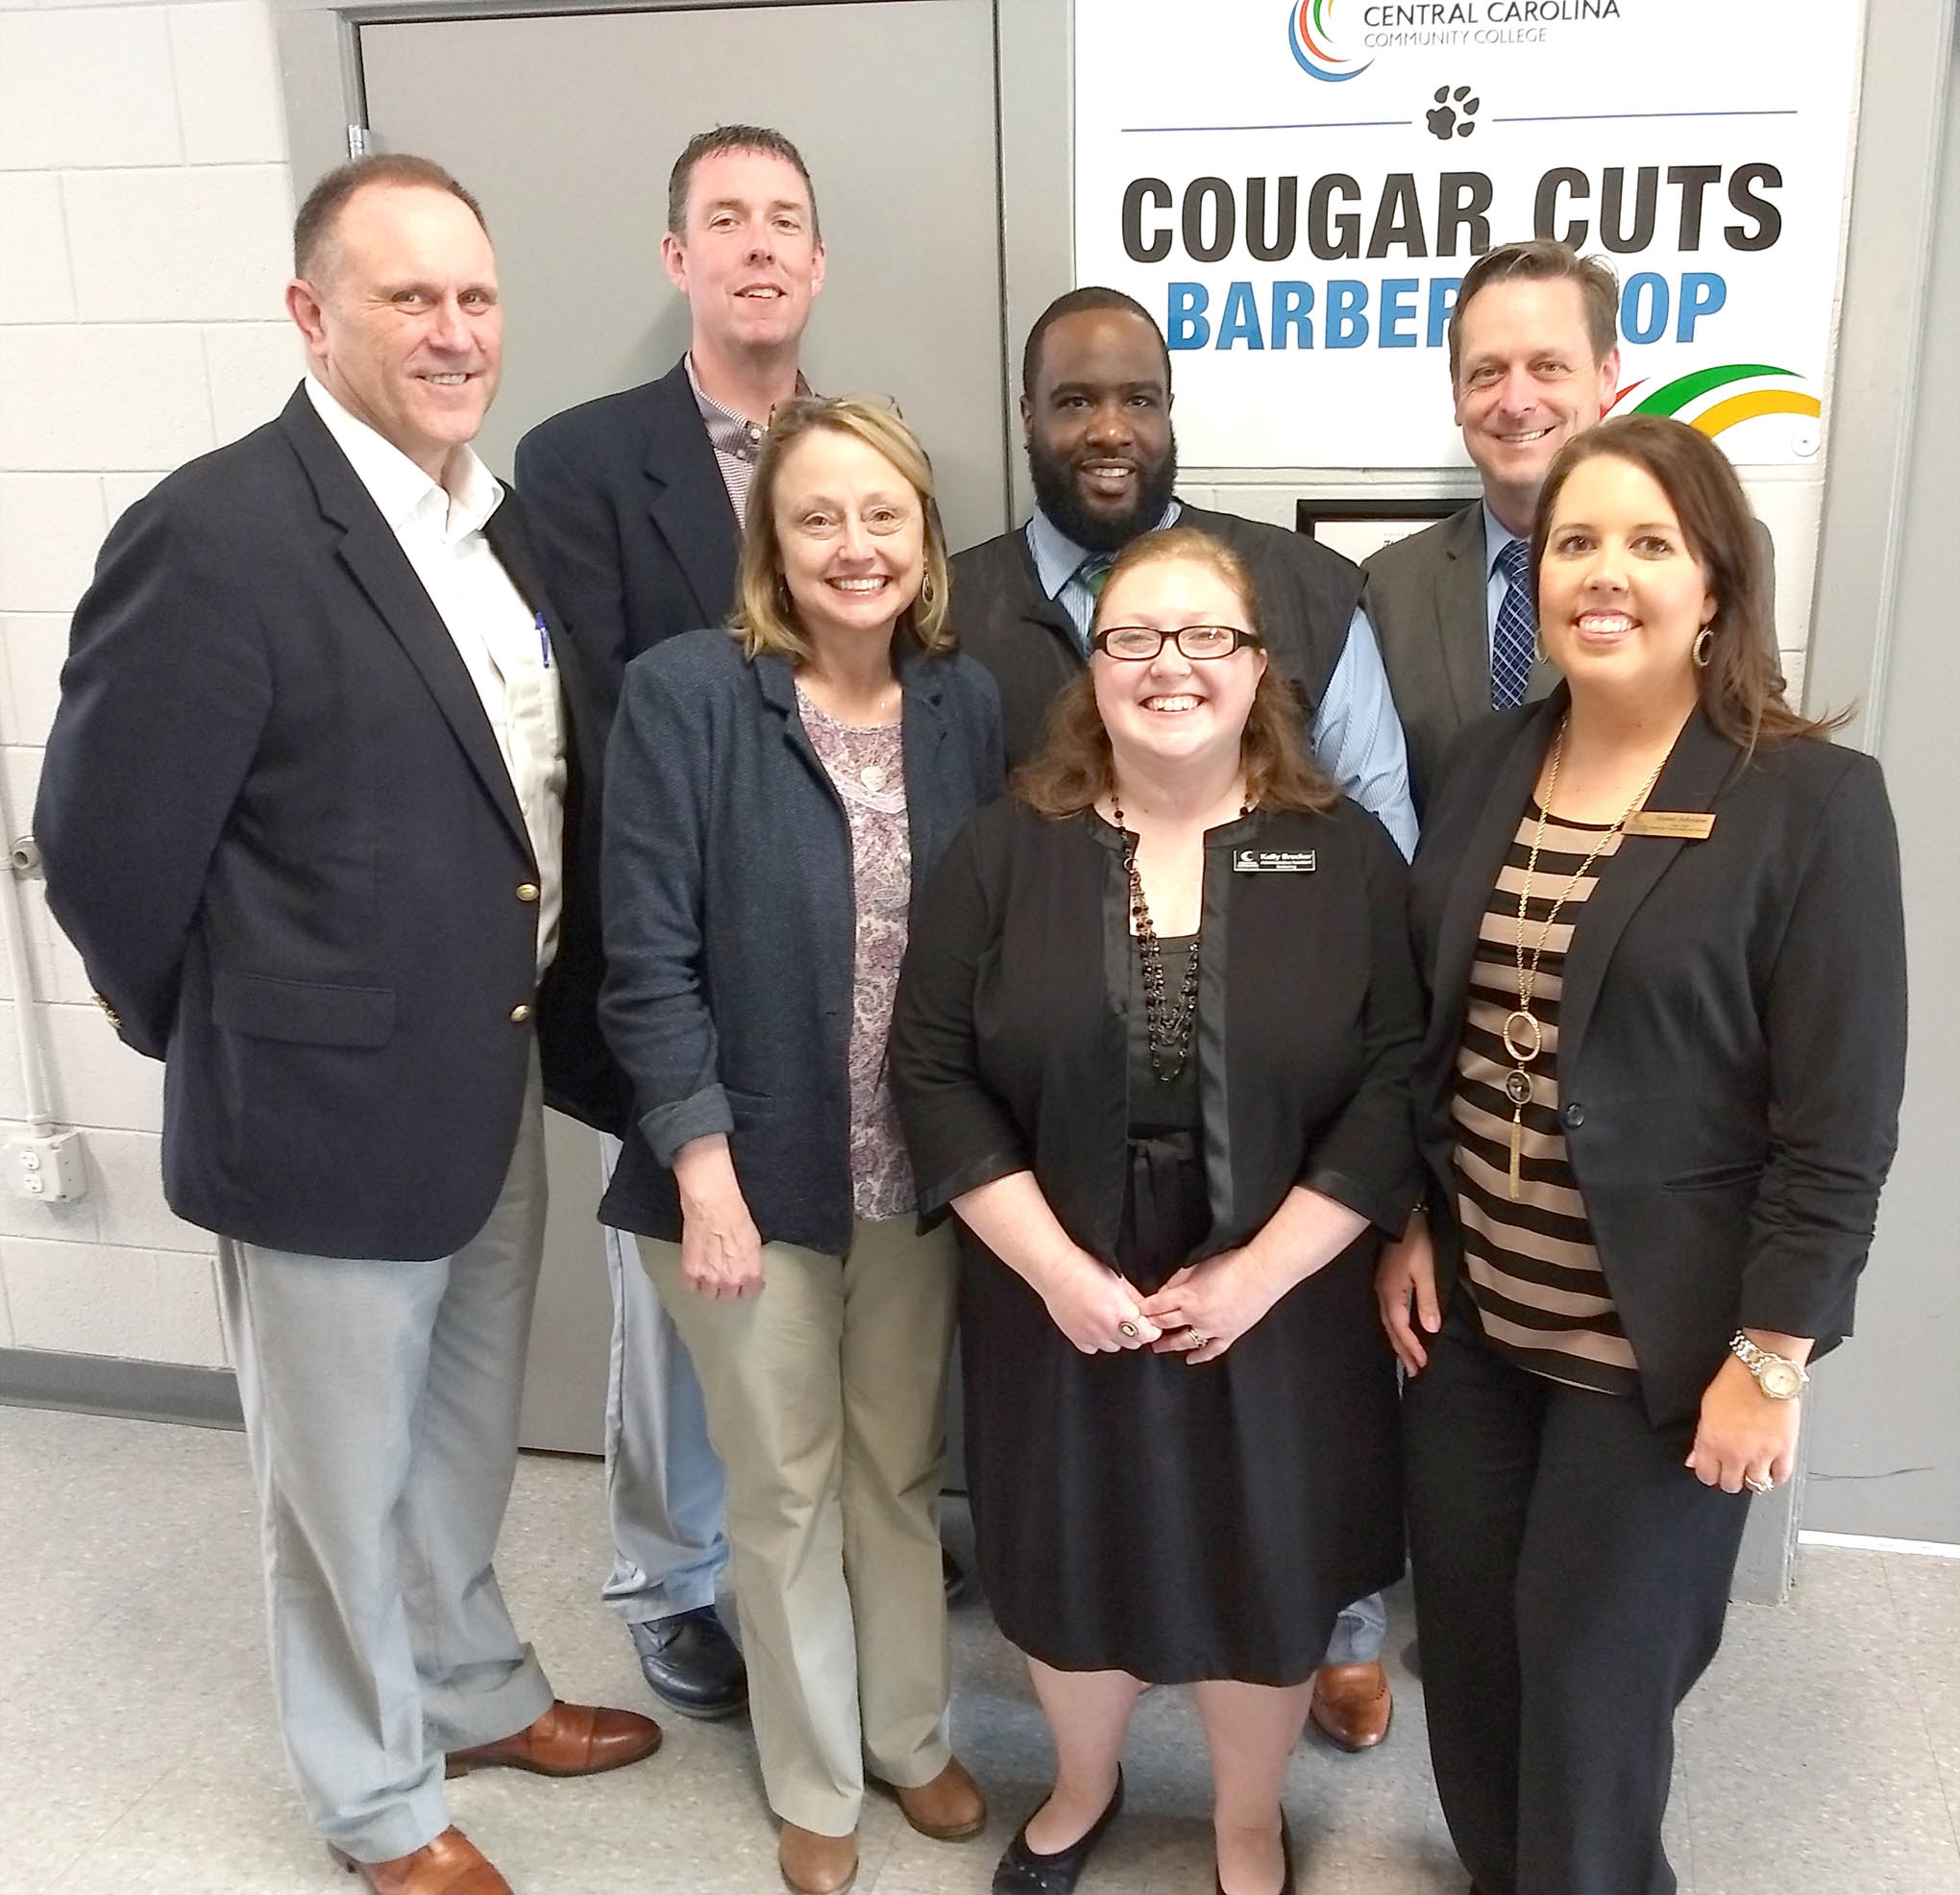 Click to enlarge,  The Central Carolina Community College Barbering program recently hosted officials from McDowell Technical Community College at the CCCC Dunn Center. Visiting were McDowell President Dr. John Gossett; Dr. Penny Cross, Vice President for Learning and Student Services; and Ryan Garrison, Vice President for Finance and Administration. Representing CCCC during the visit were Dr. Jon Matthews, Harnett Provost; Arthur McCullers, Barbering Instructor; Susan Johnson, Department Chair of Cosmetic Arts; and Kelly Brucker, Barbering Administrative Assistant.